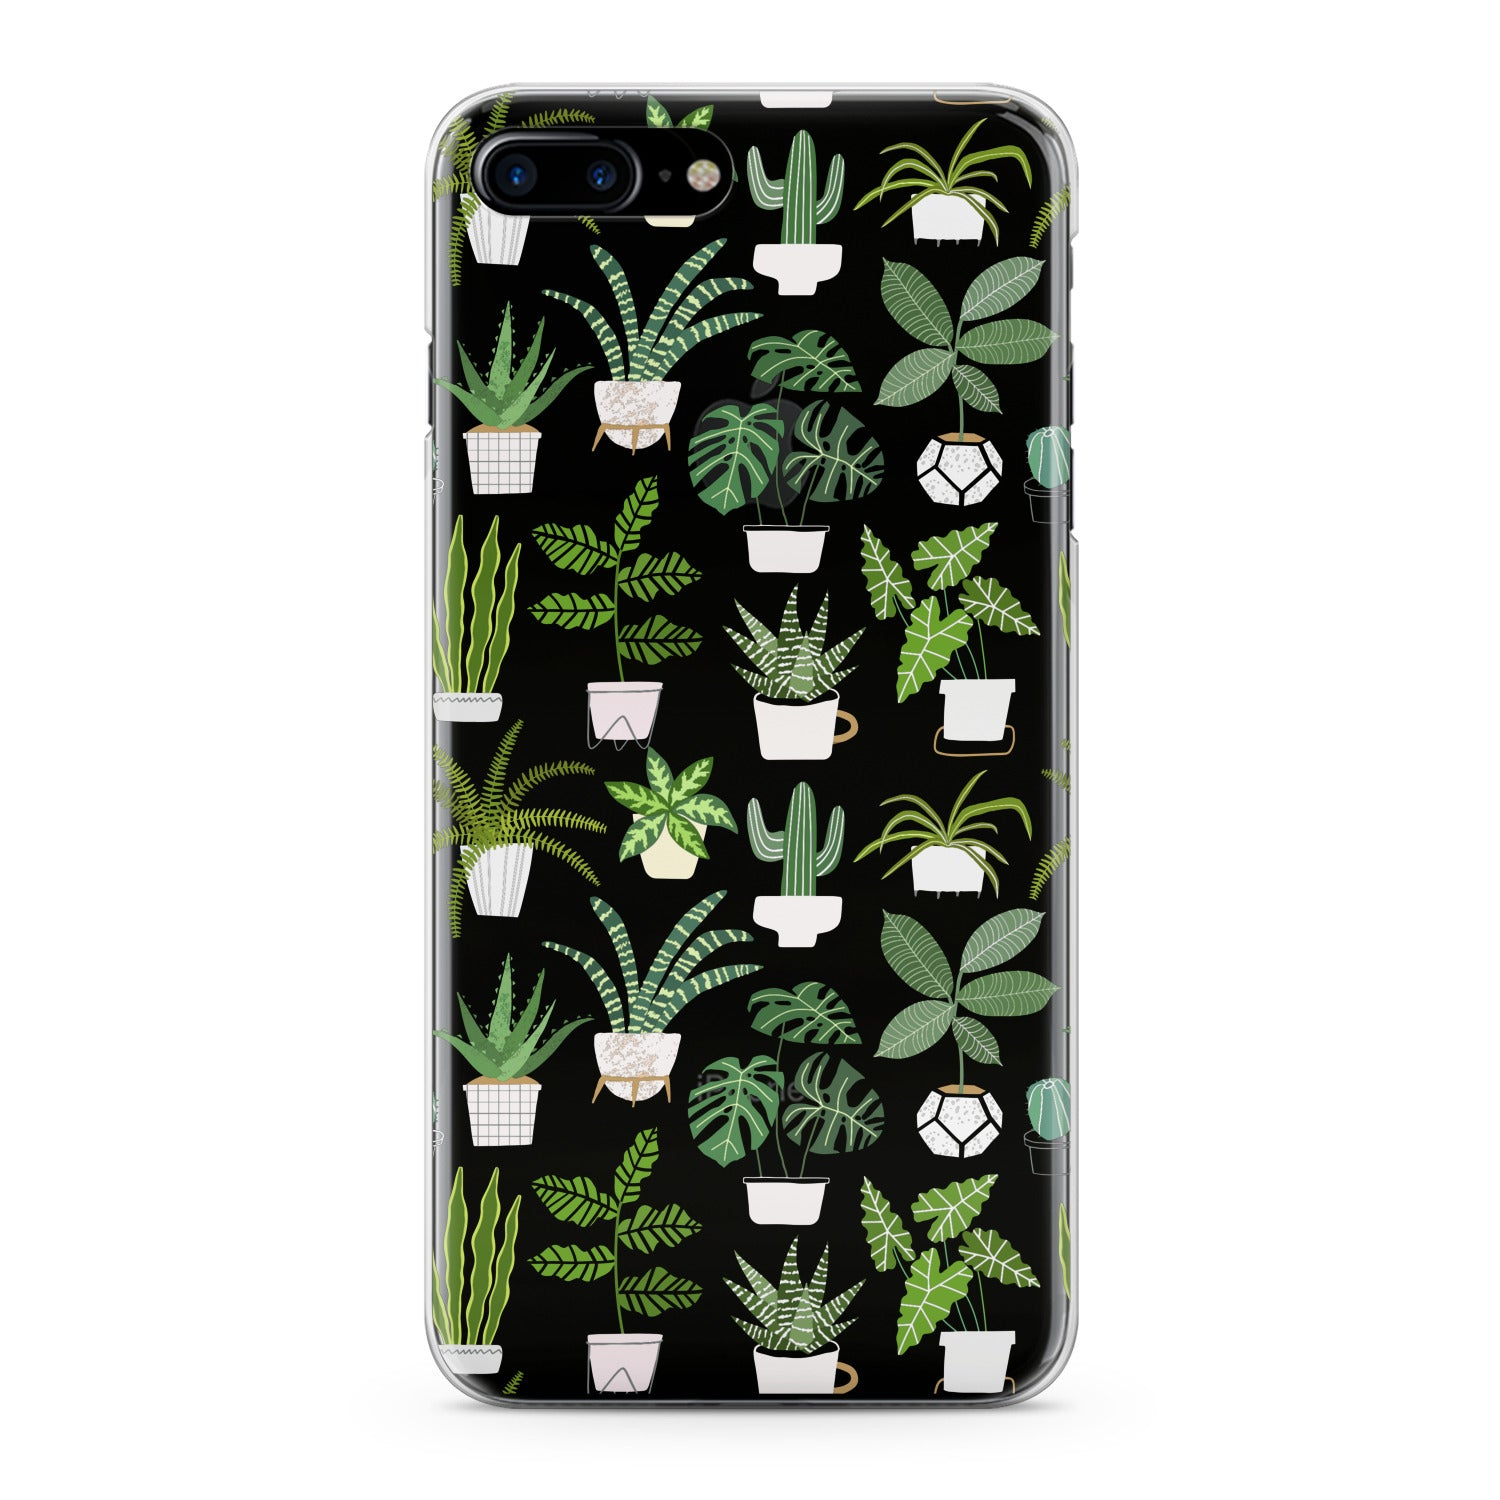 Lex Altern Tropical Potted Plants Phone Case for your iPhone & Android phone.